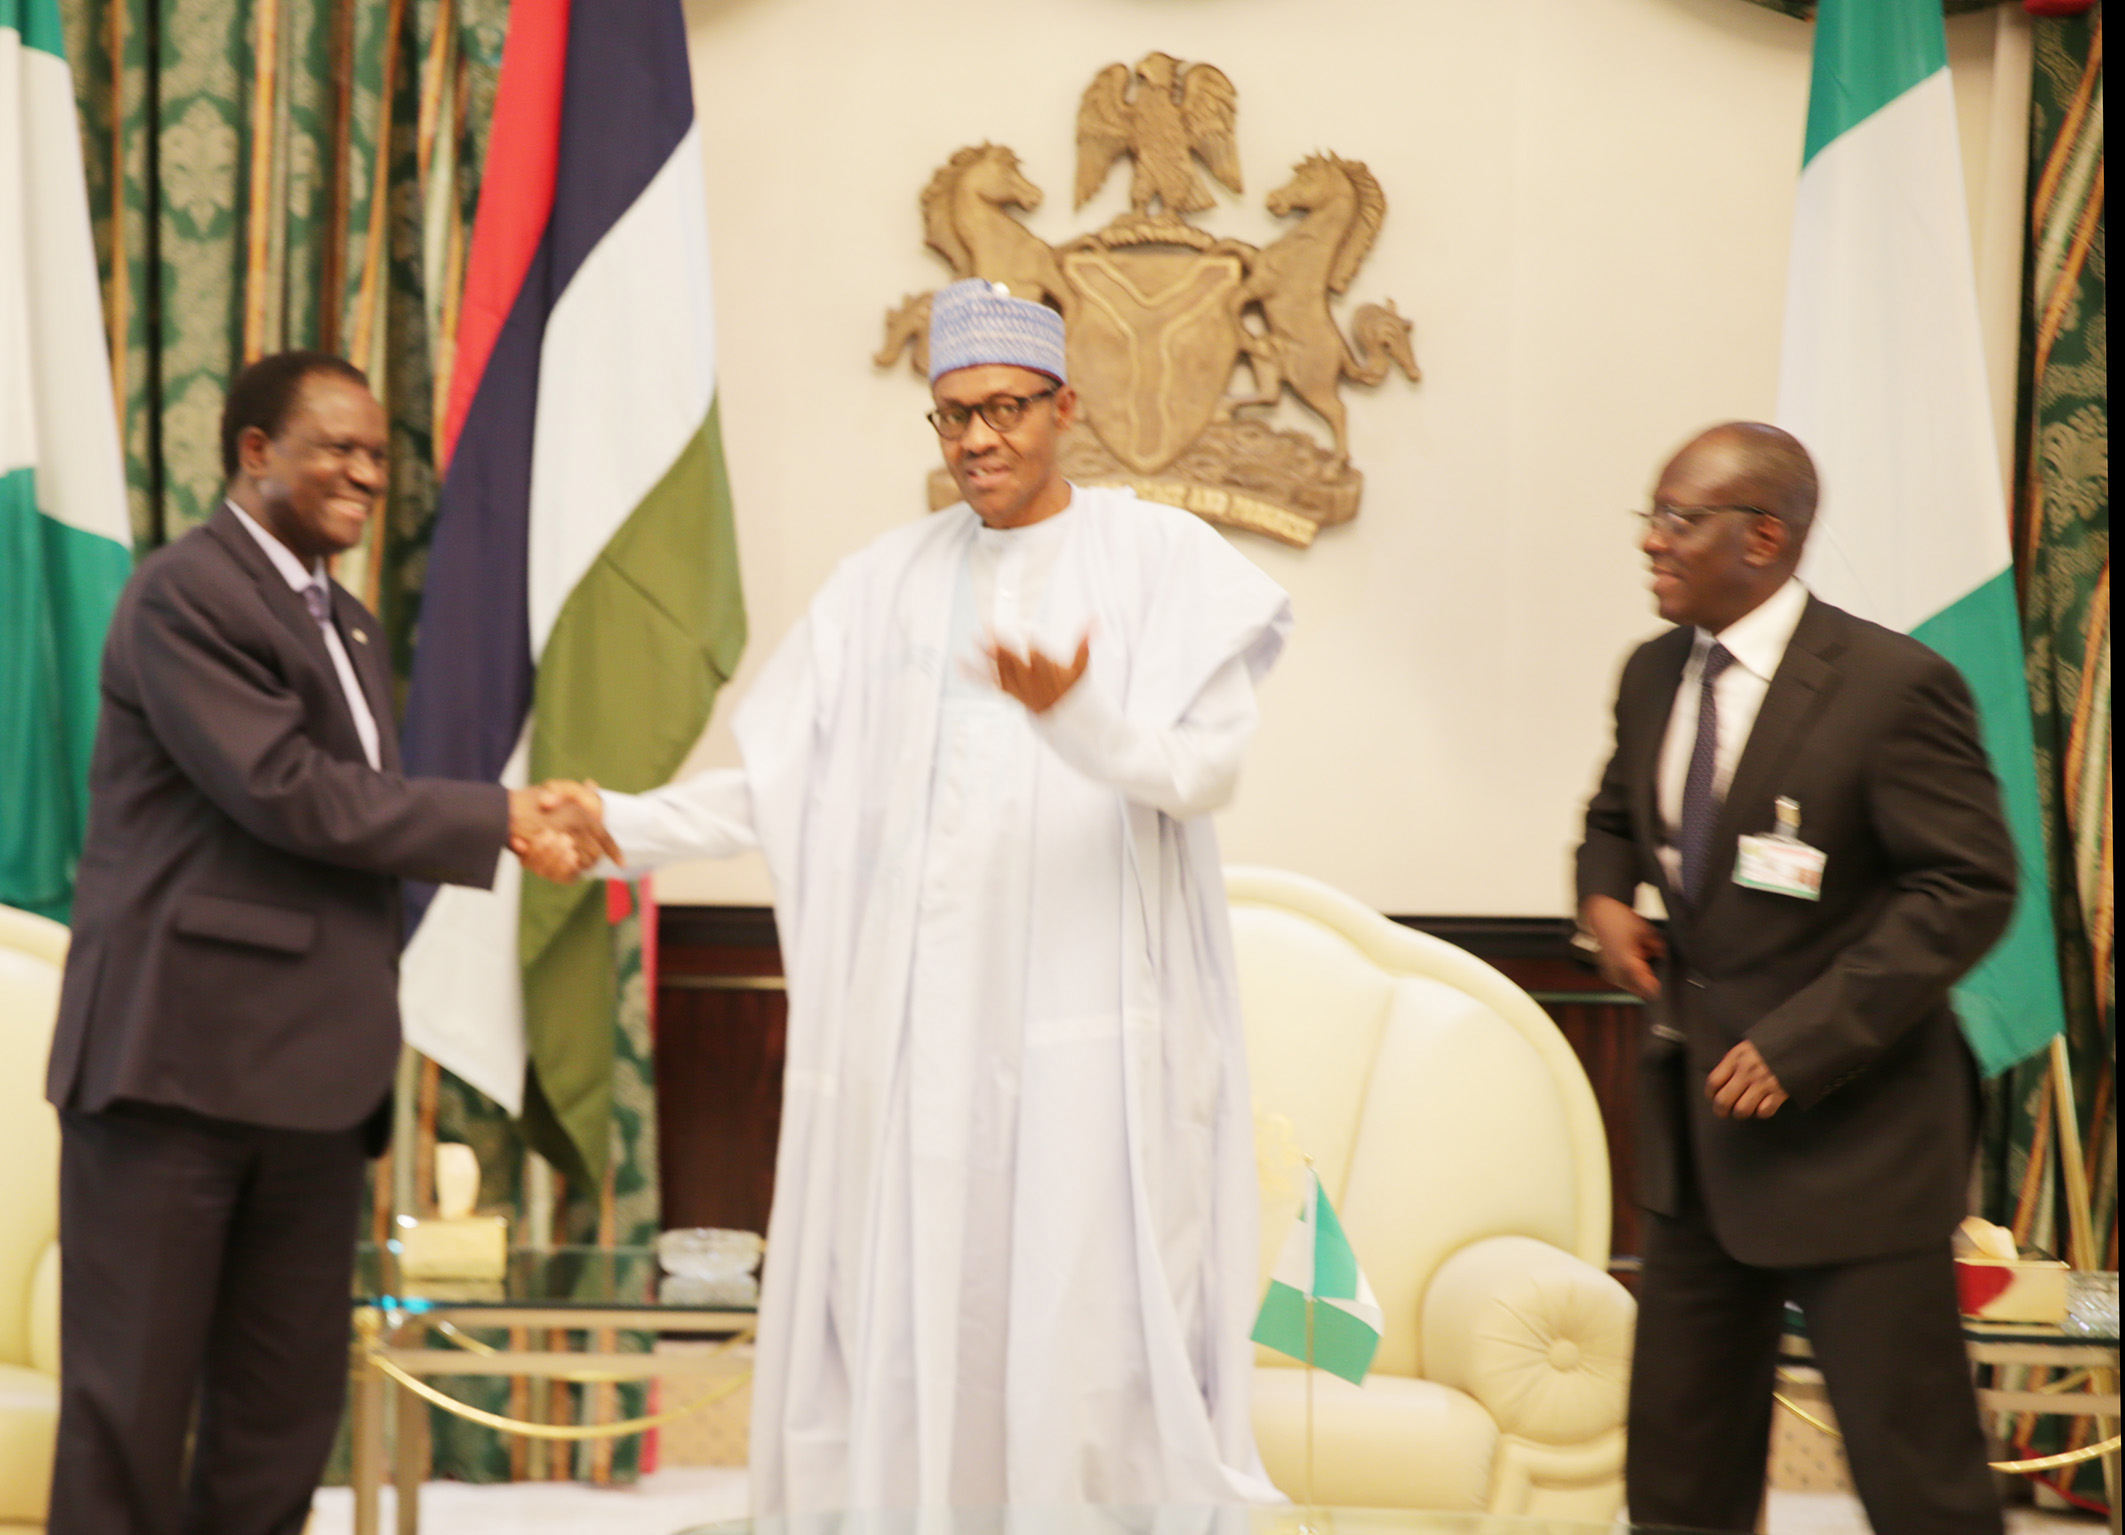 PRESIDENT BUHARI RECEIVES ECOWAS PRESIDENT 1A. President Muhammadu Buhari (M) flanked by ECOWAS President Kare Desire Ouedraogo left and the Permanent Secretary Ministry of foreign Affairs, Ambassador Bulus Lolo at the Presidential Villa in Abuja. PHOTO; OFFICE OF THE PRESIDENT JUNE 25 2015